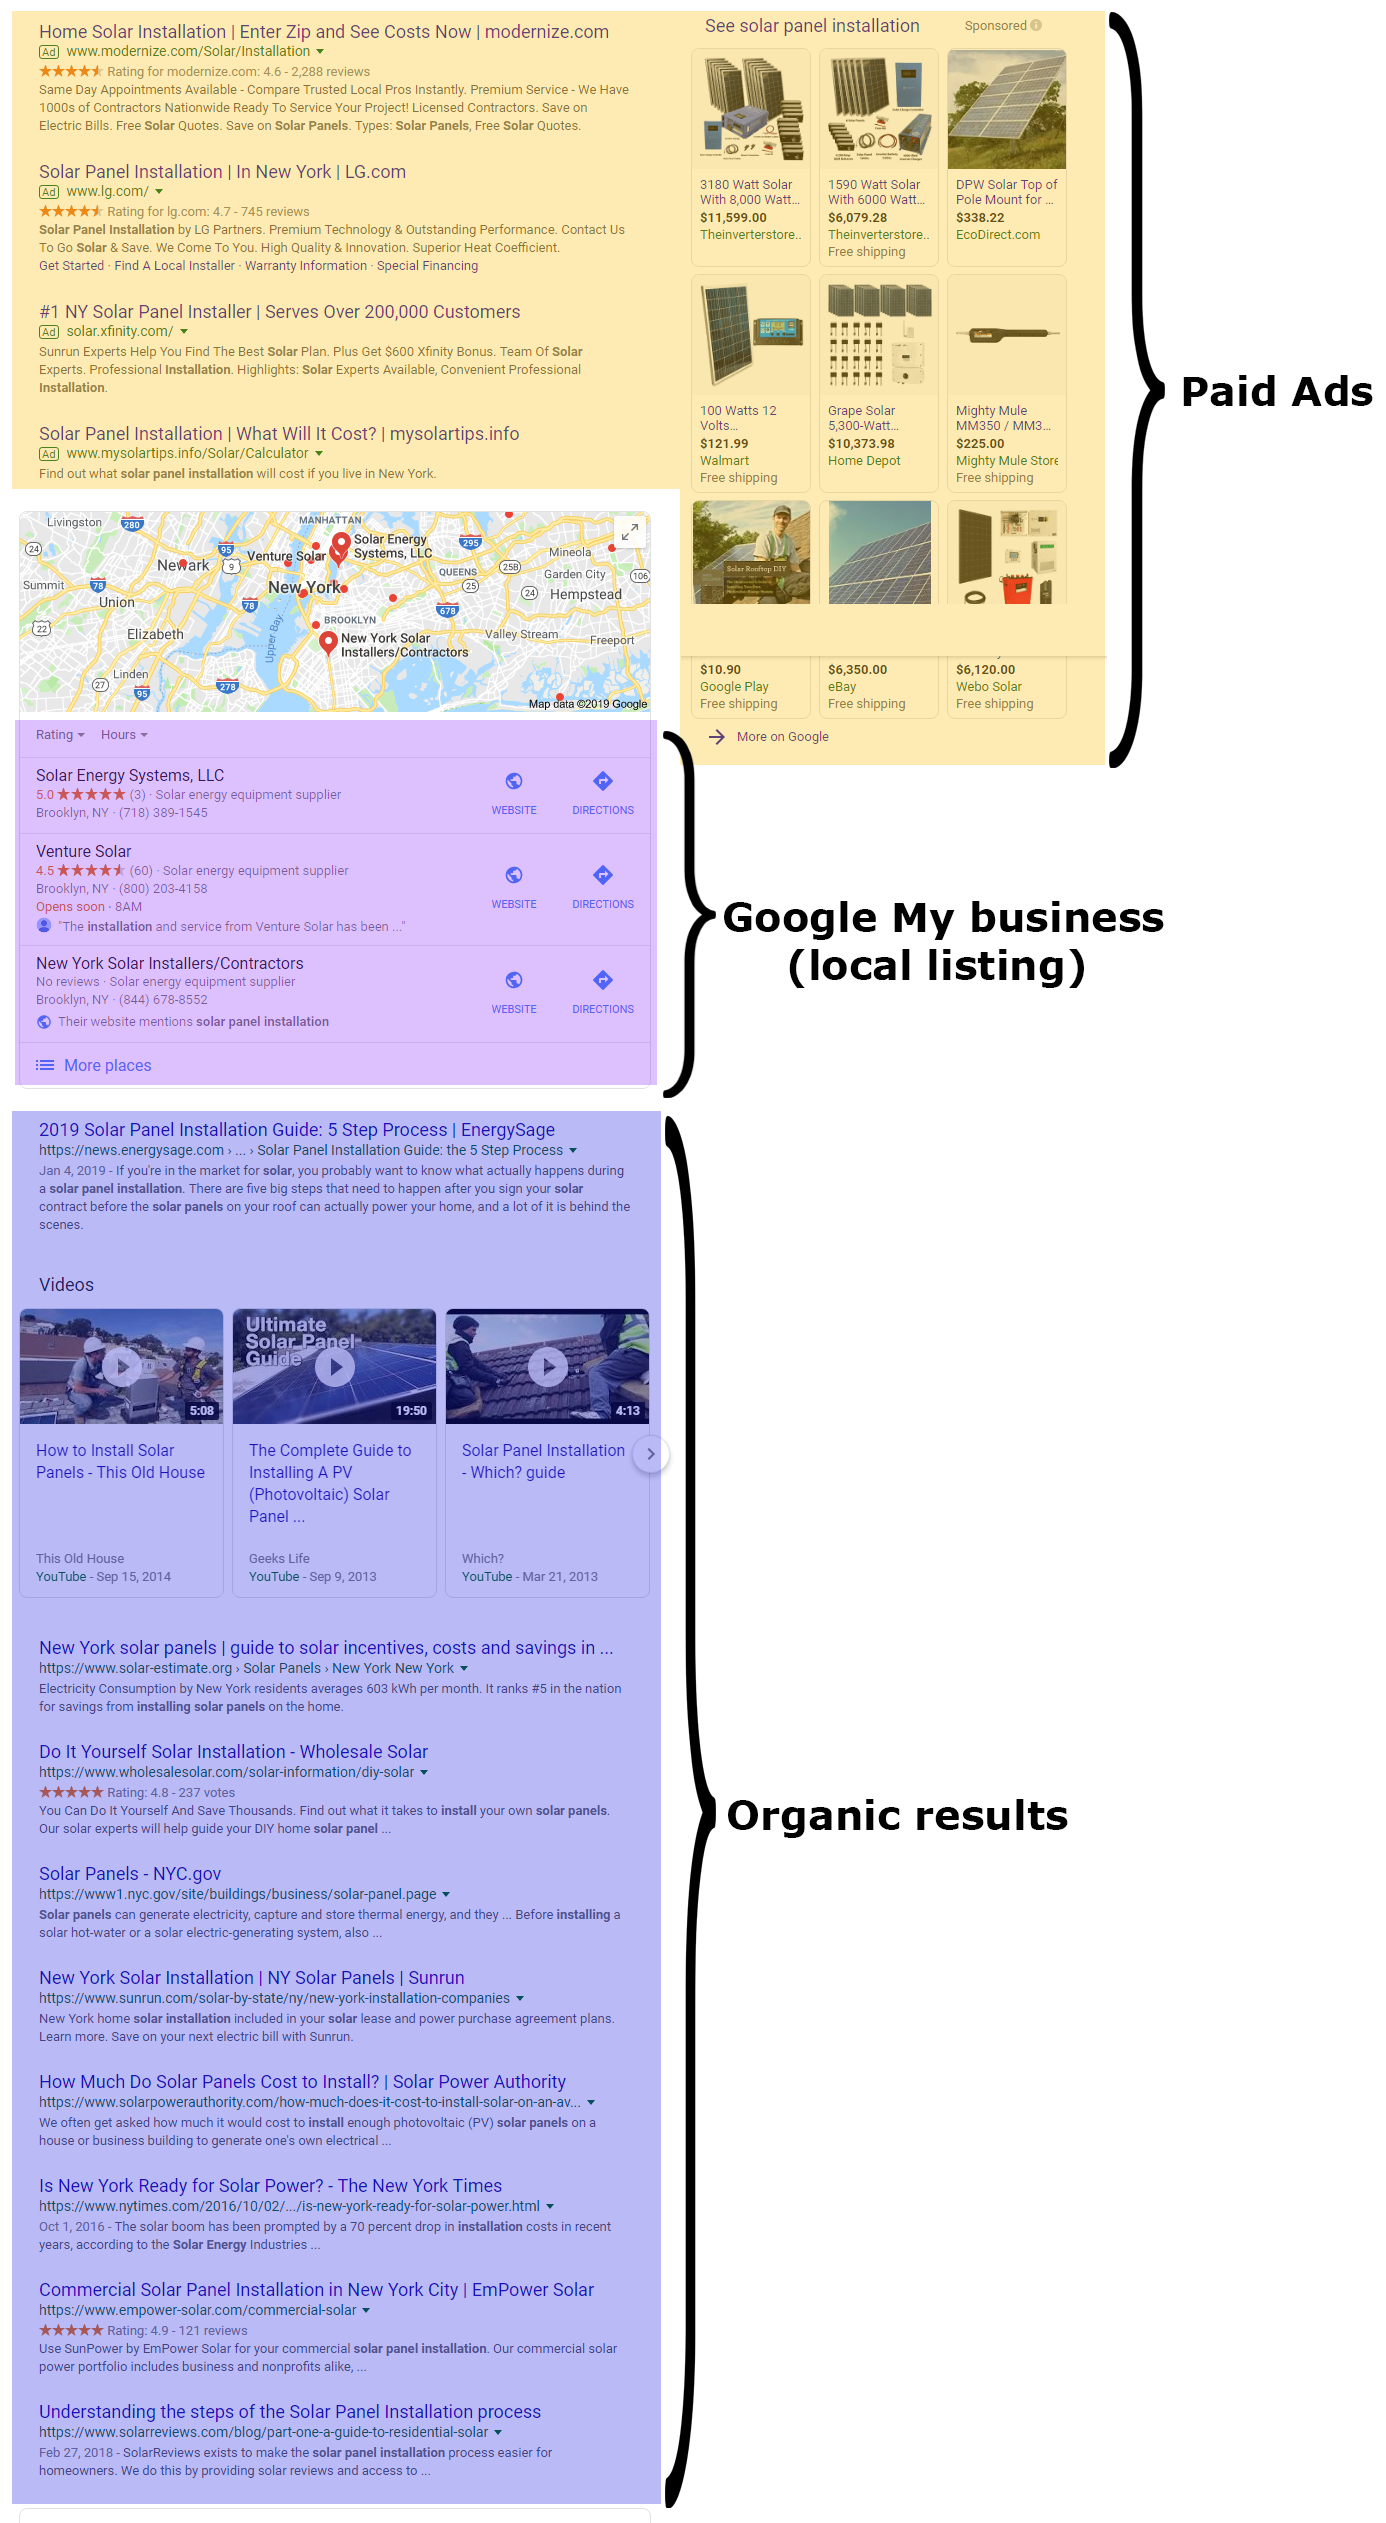 google ads position in SERP